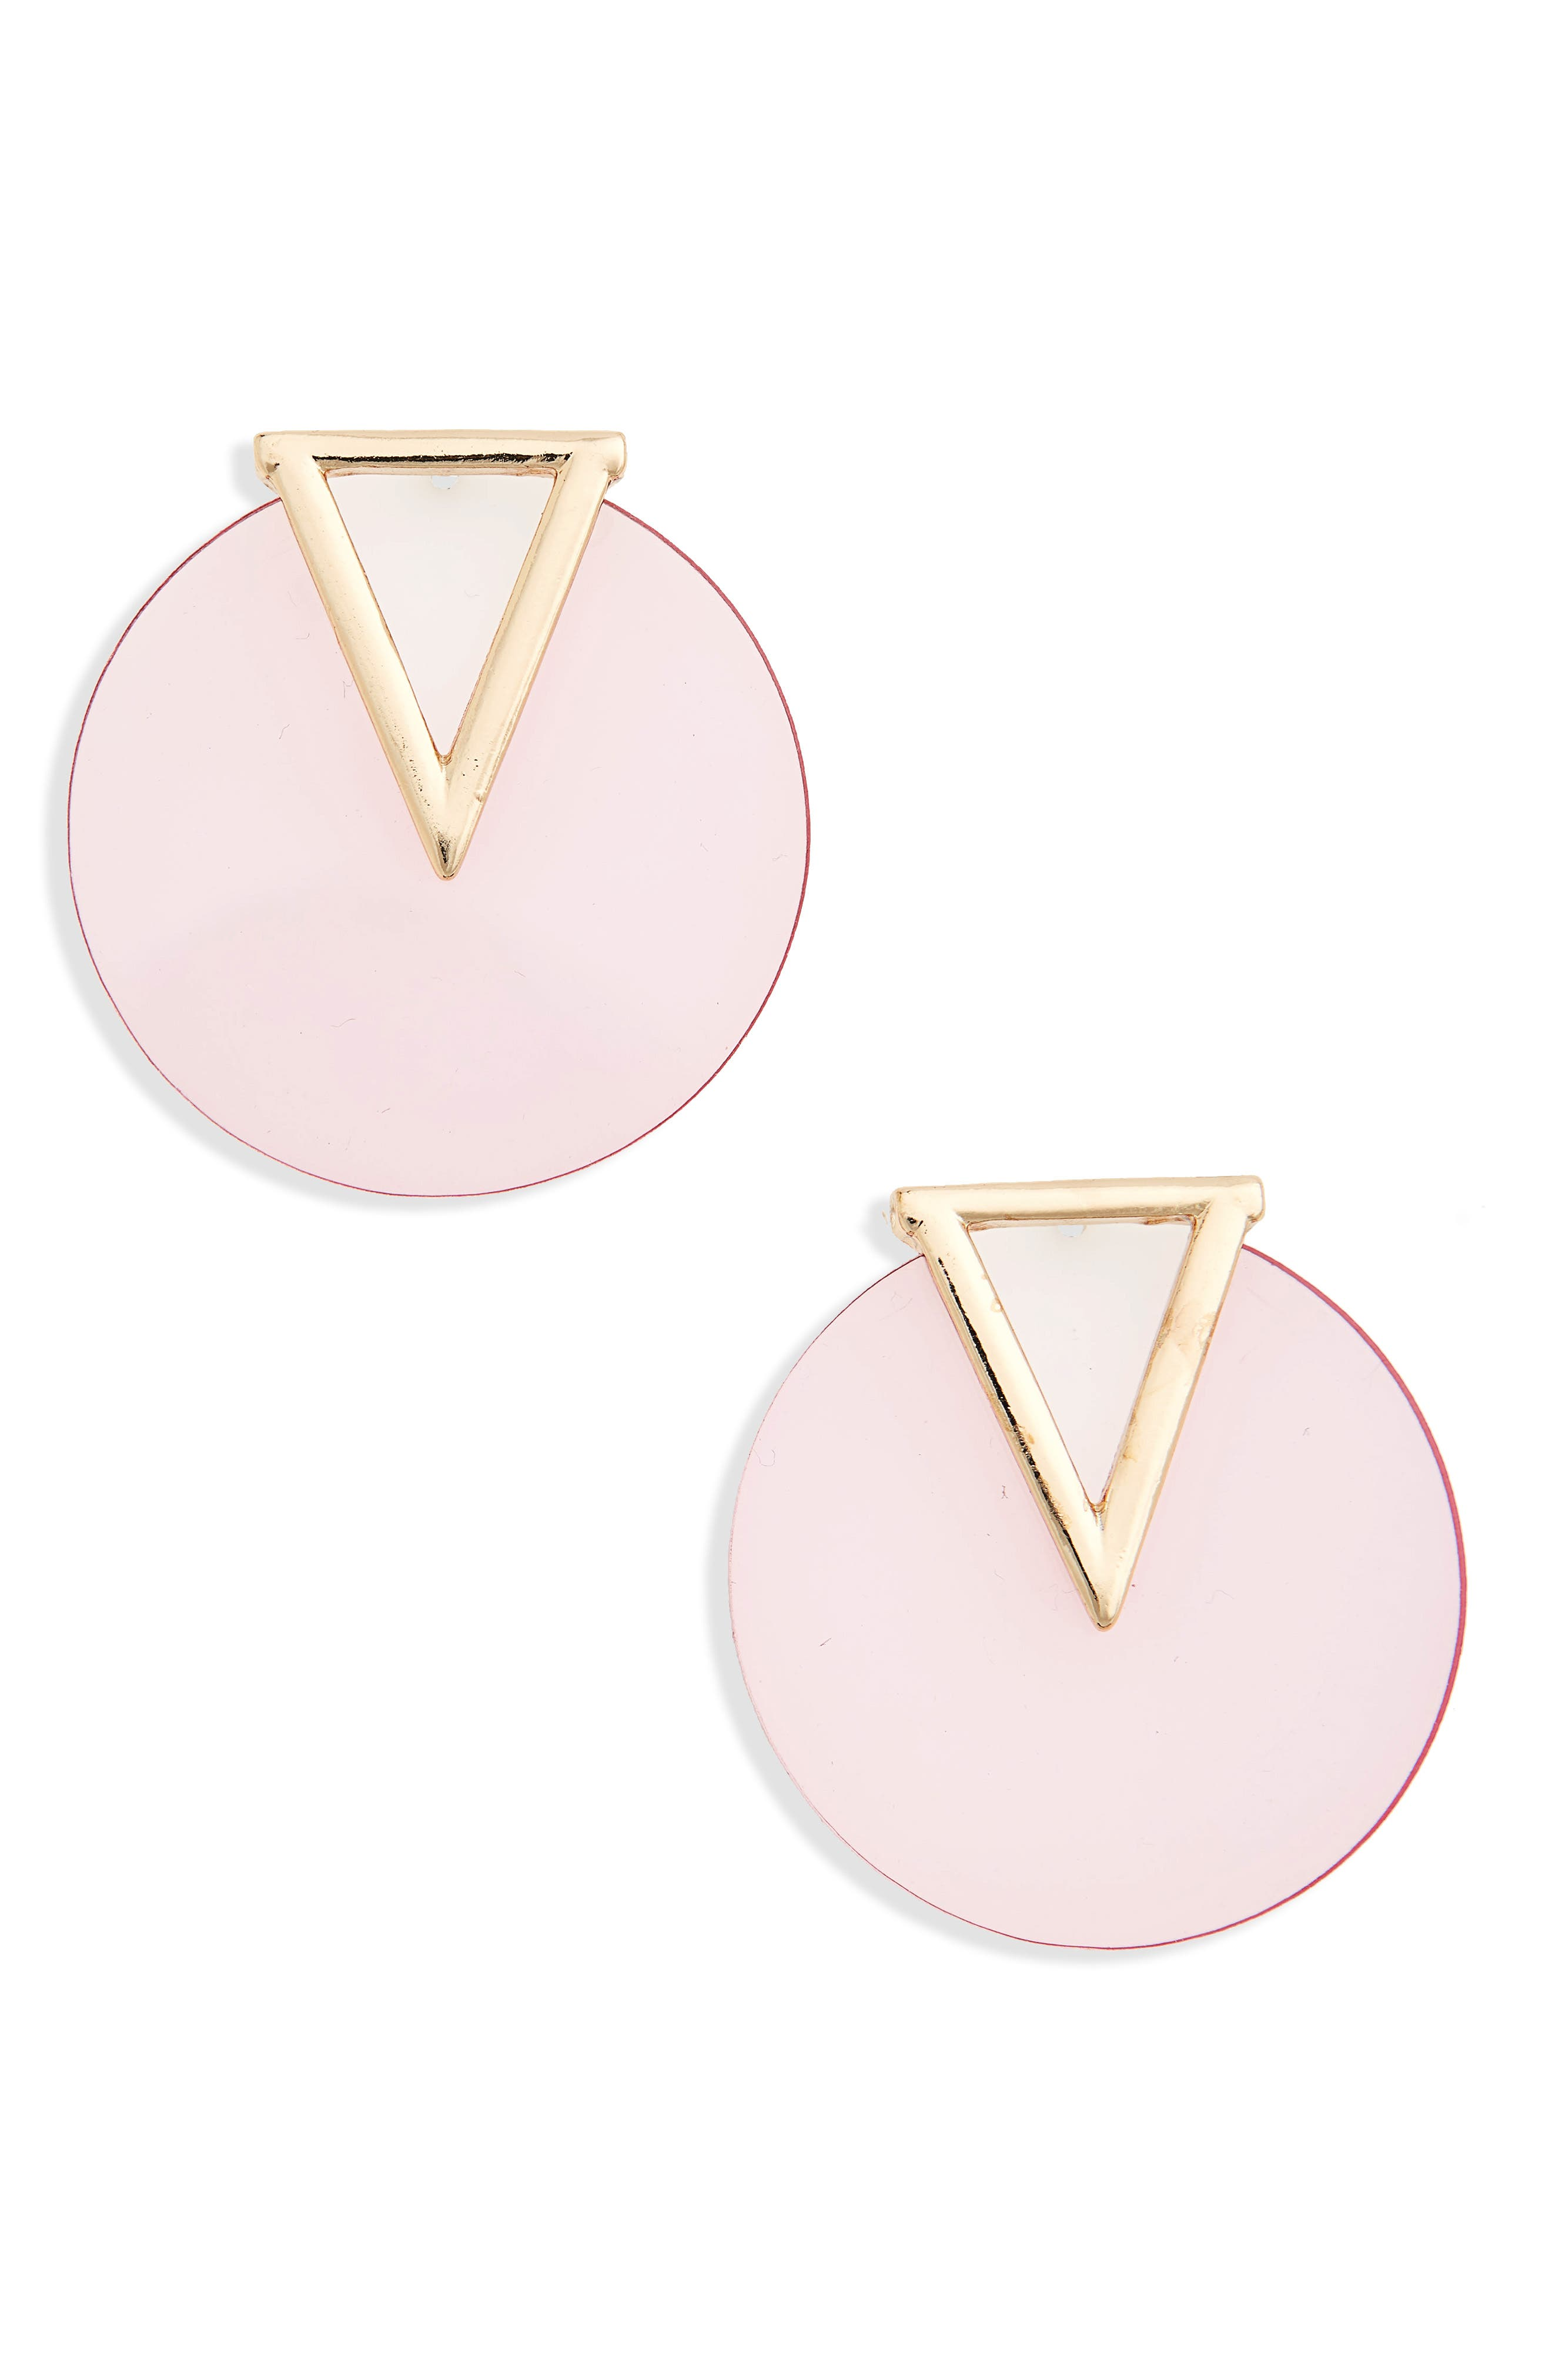 Triangle & Circle Statement Earrings,                             Main thumbnail 1, color,                             650